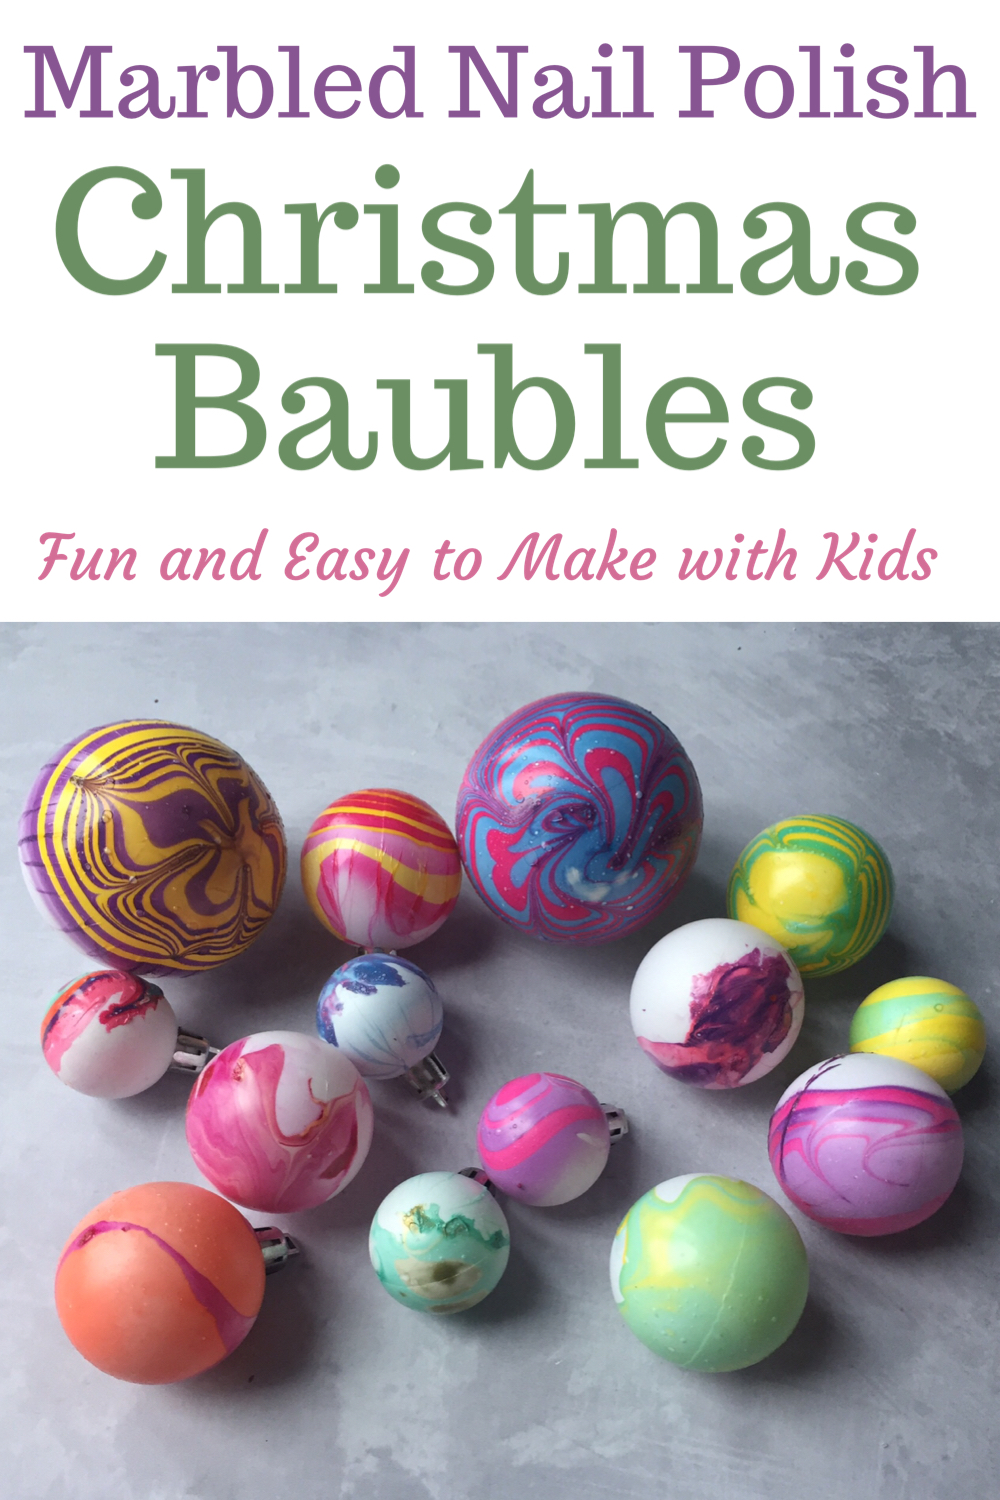 Marbled nail Polish Christmas baubles - Fun and easy to make with kids